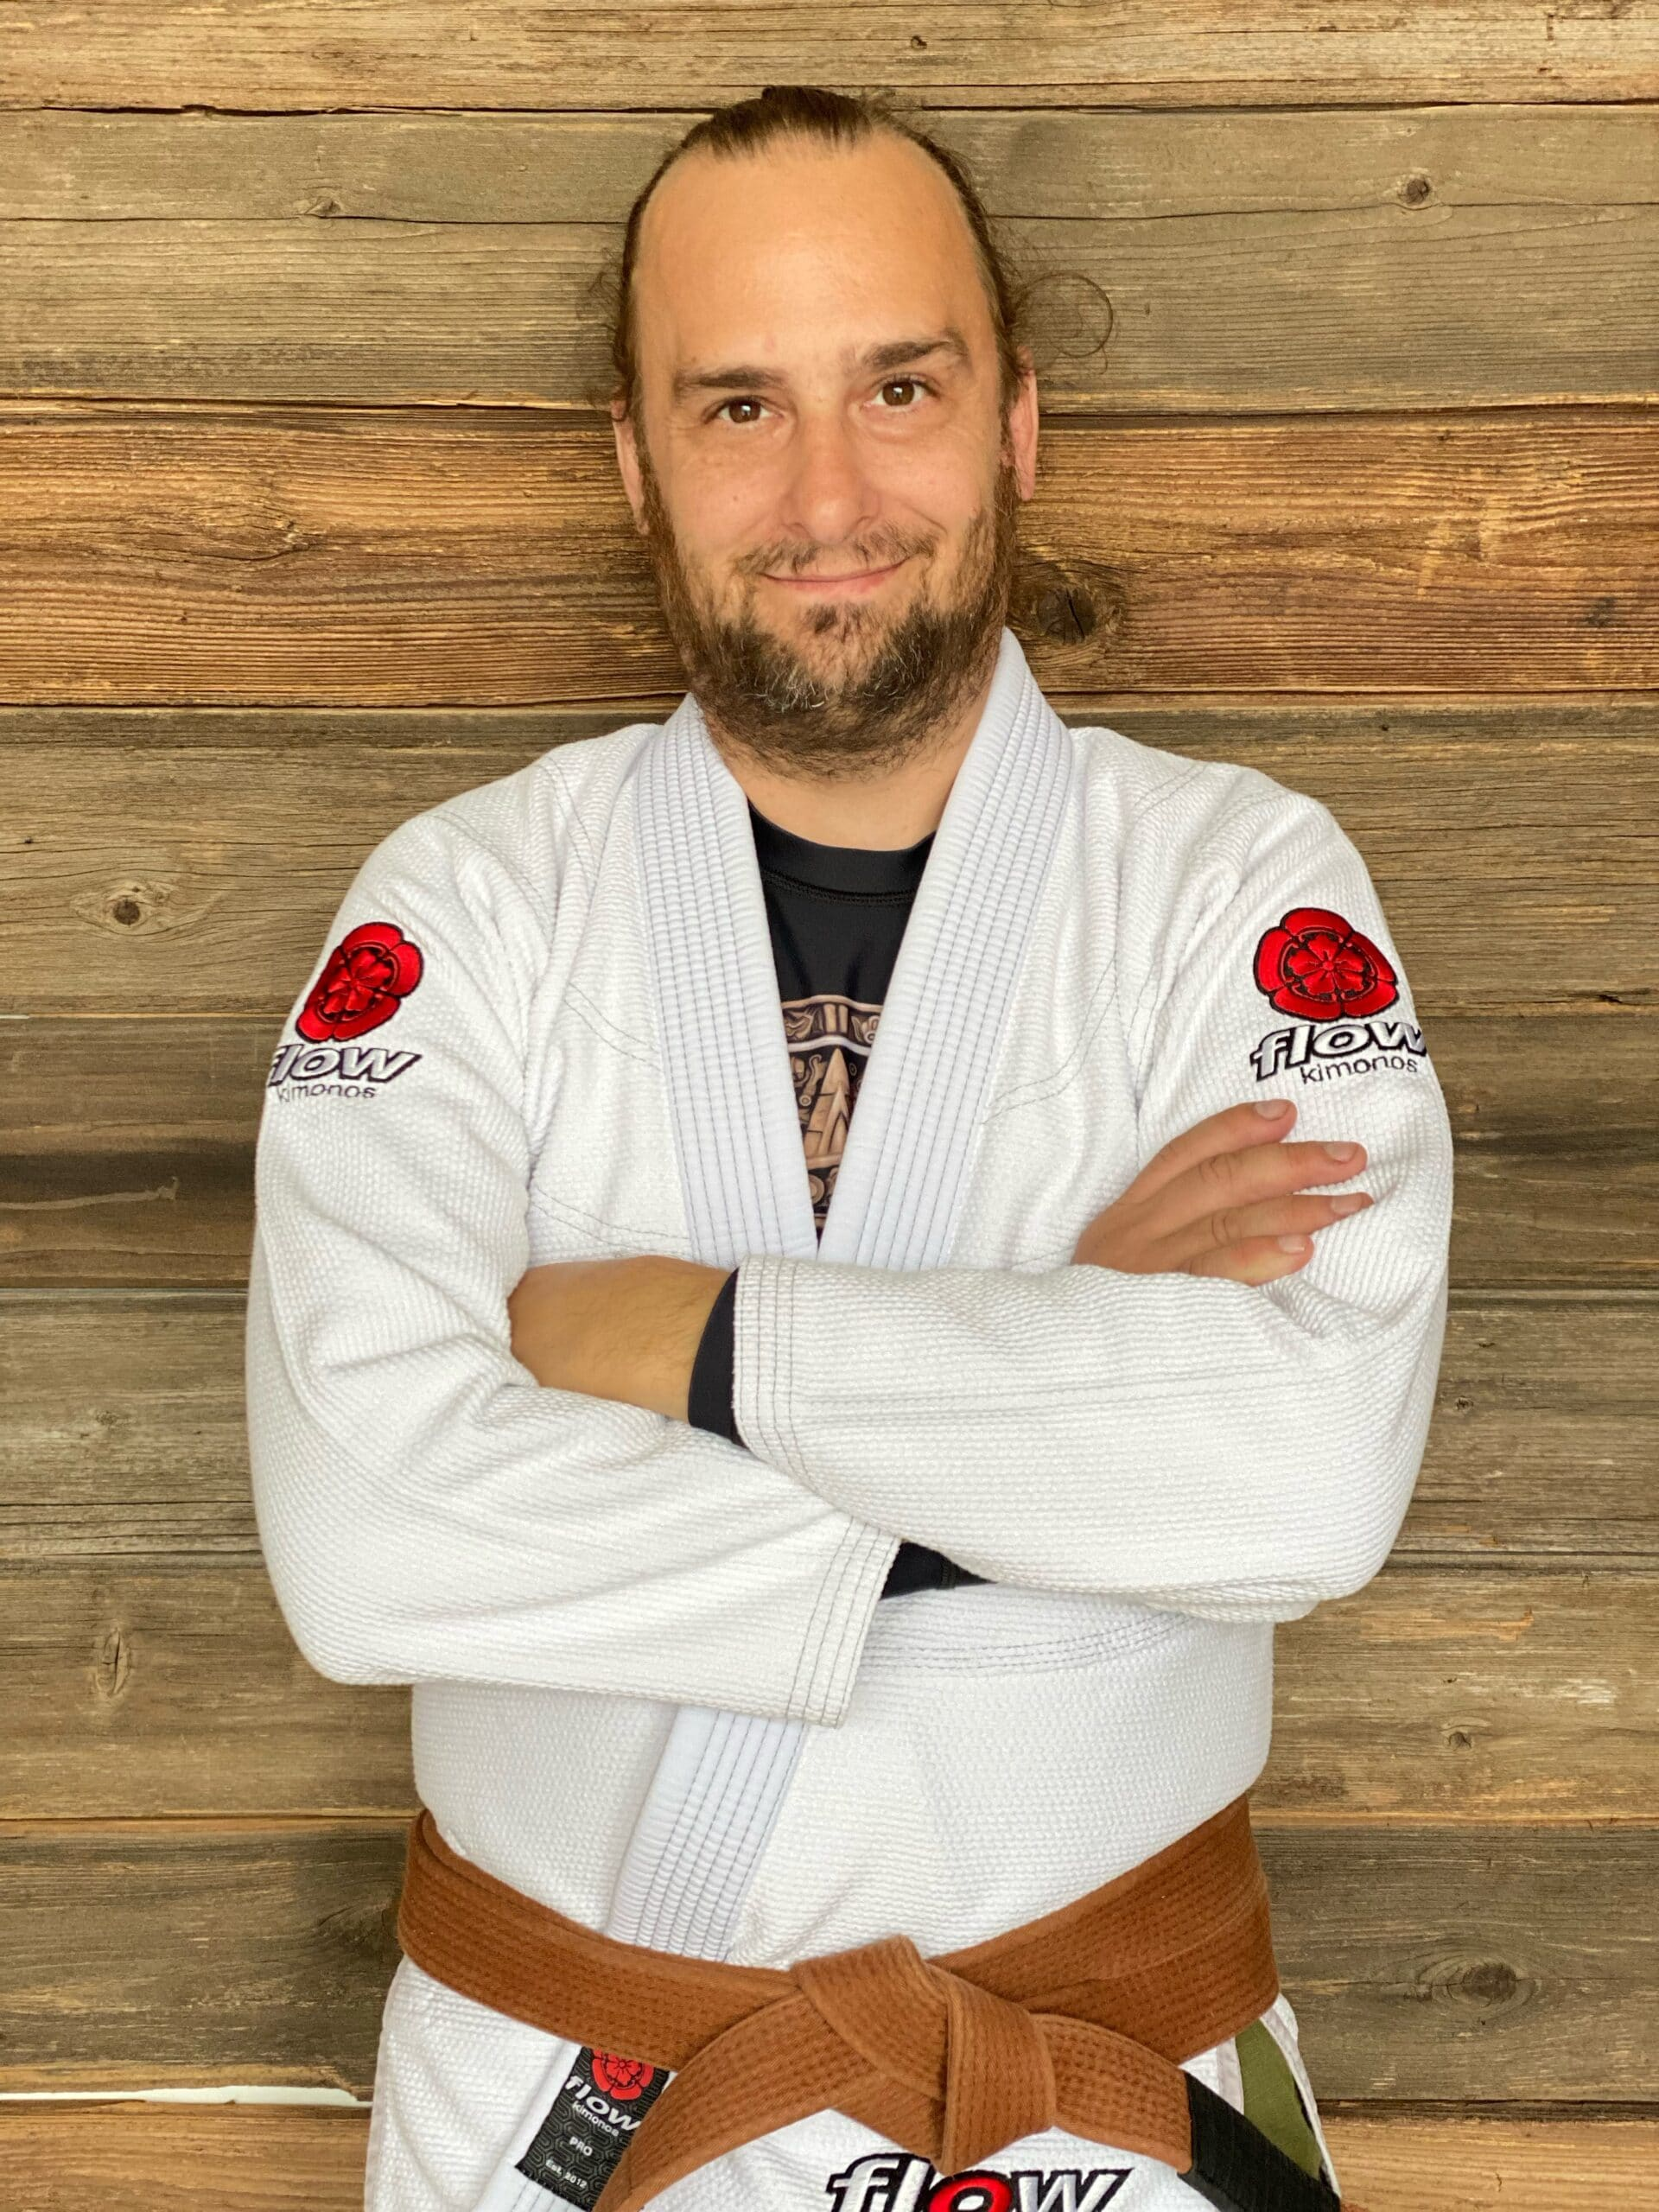 Coach Shane posing for a picture in a white Jiu-Jitsu gi with his brown belt on in Blaine MN